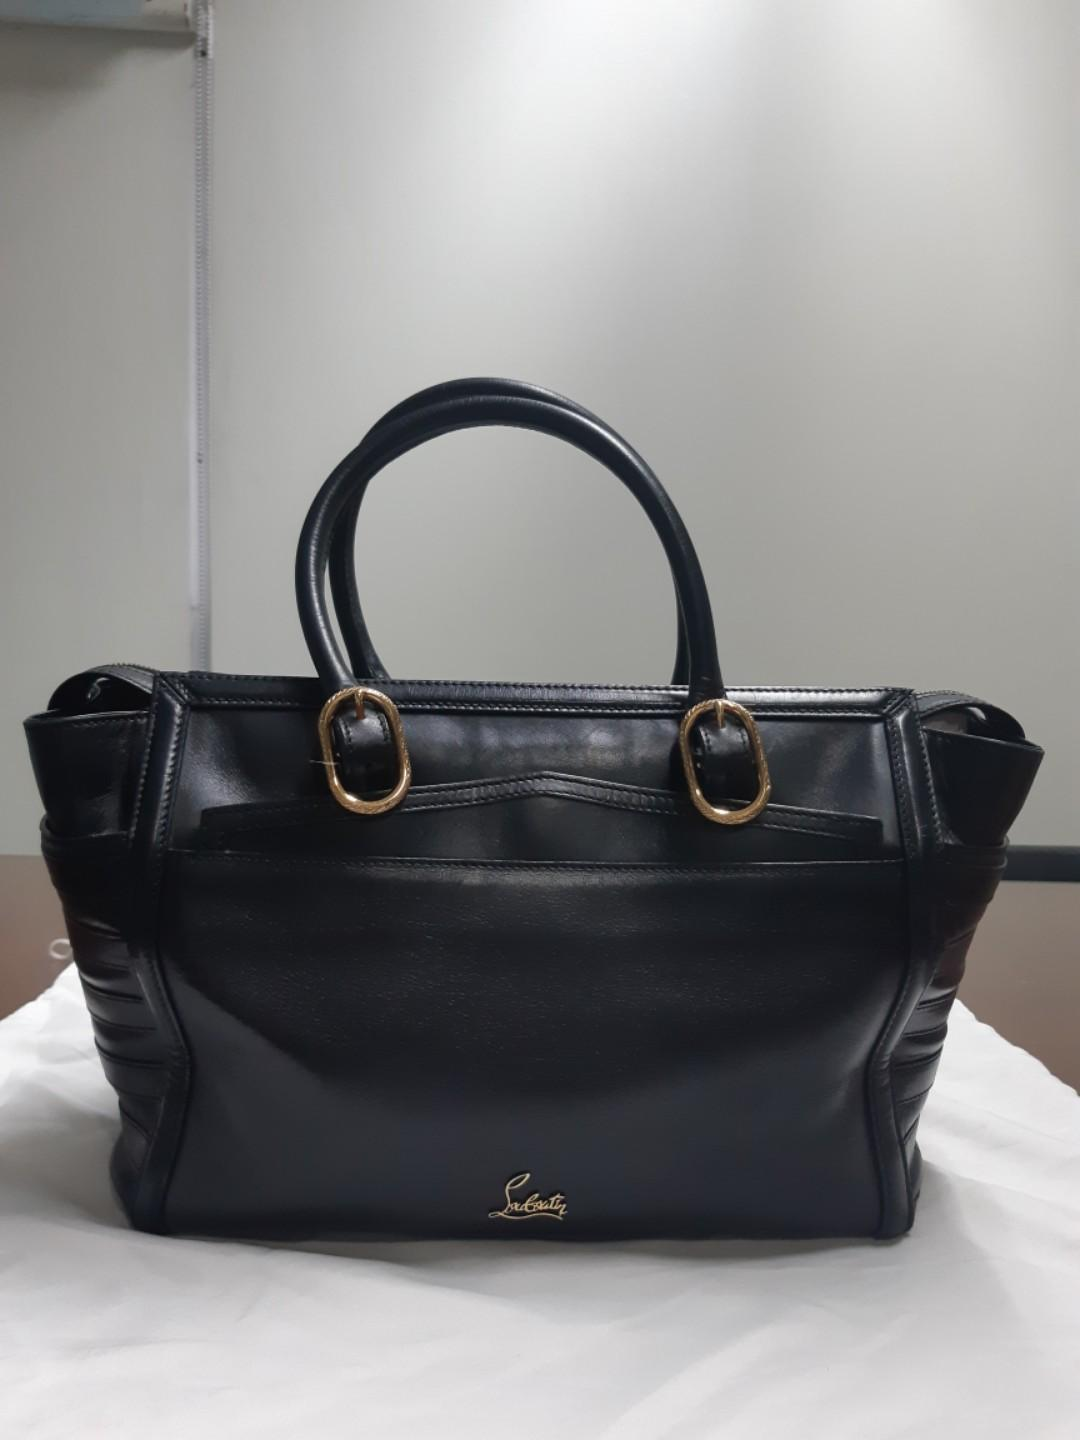 6d056968df0 Pre-loved Authentic - Christian Louboutin Bag on Carousell